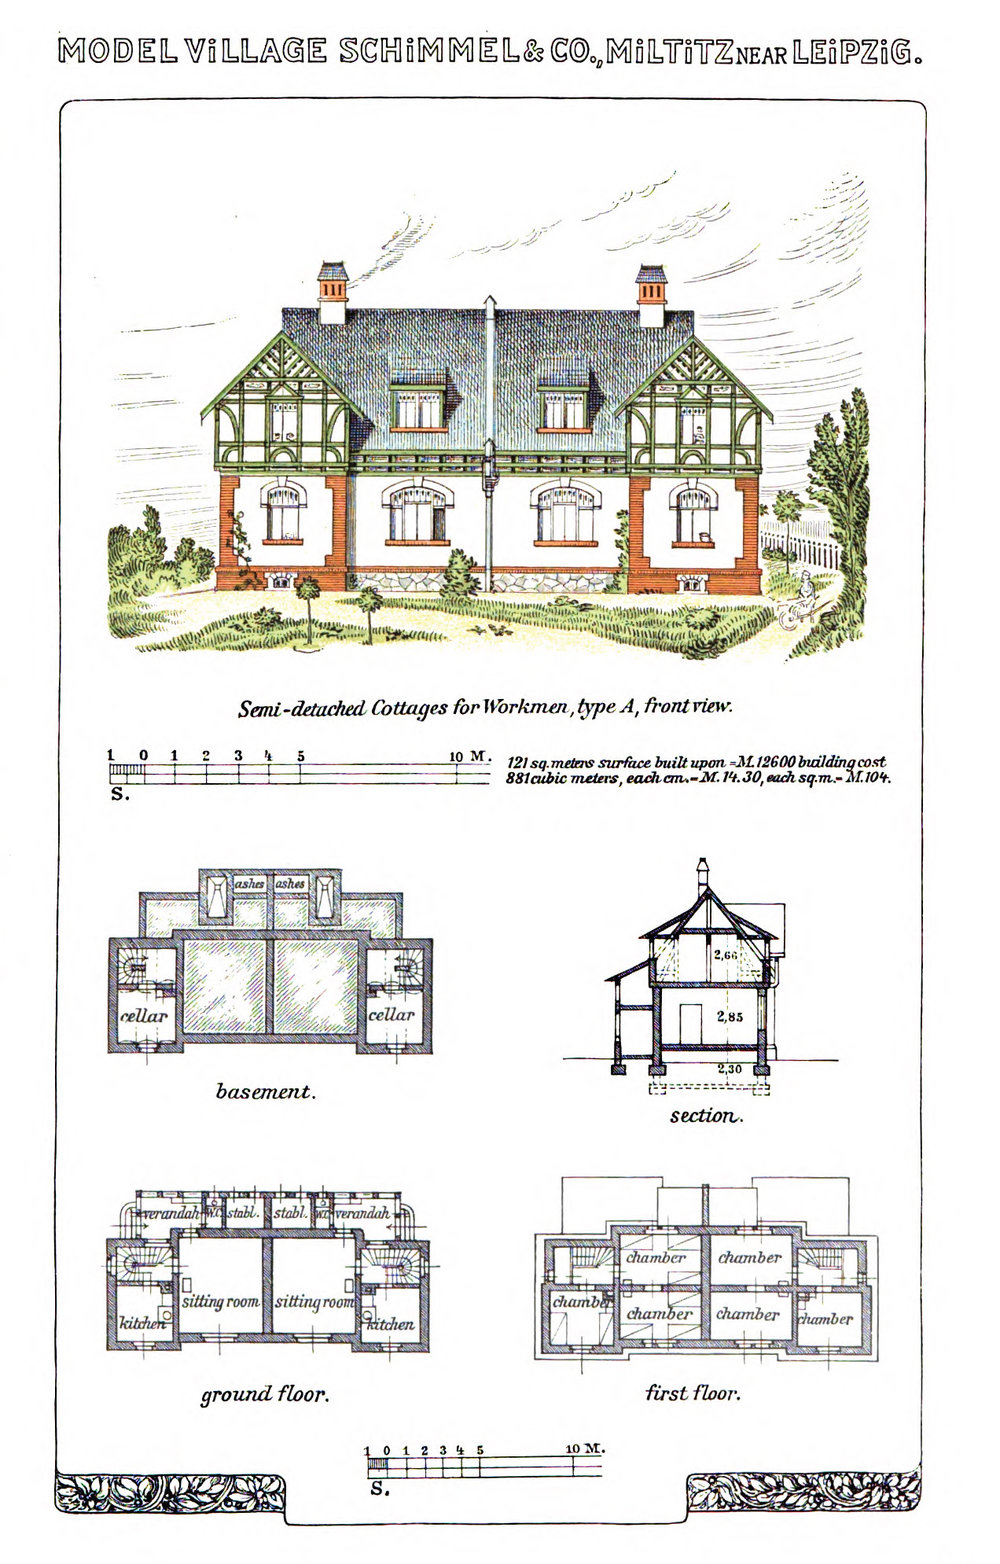 Semi-detached cottages for workmen. From  Schimmel & Co's Works,  1908.